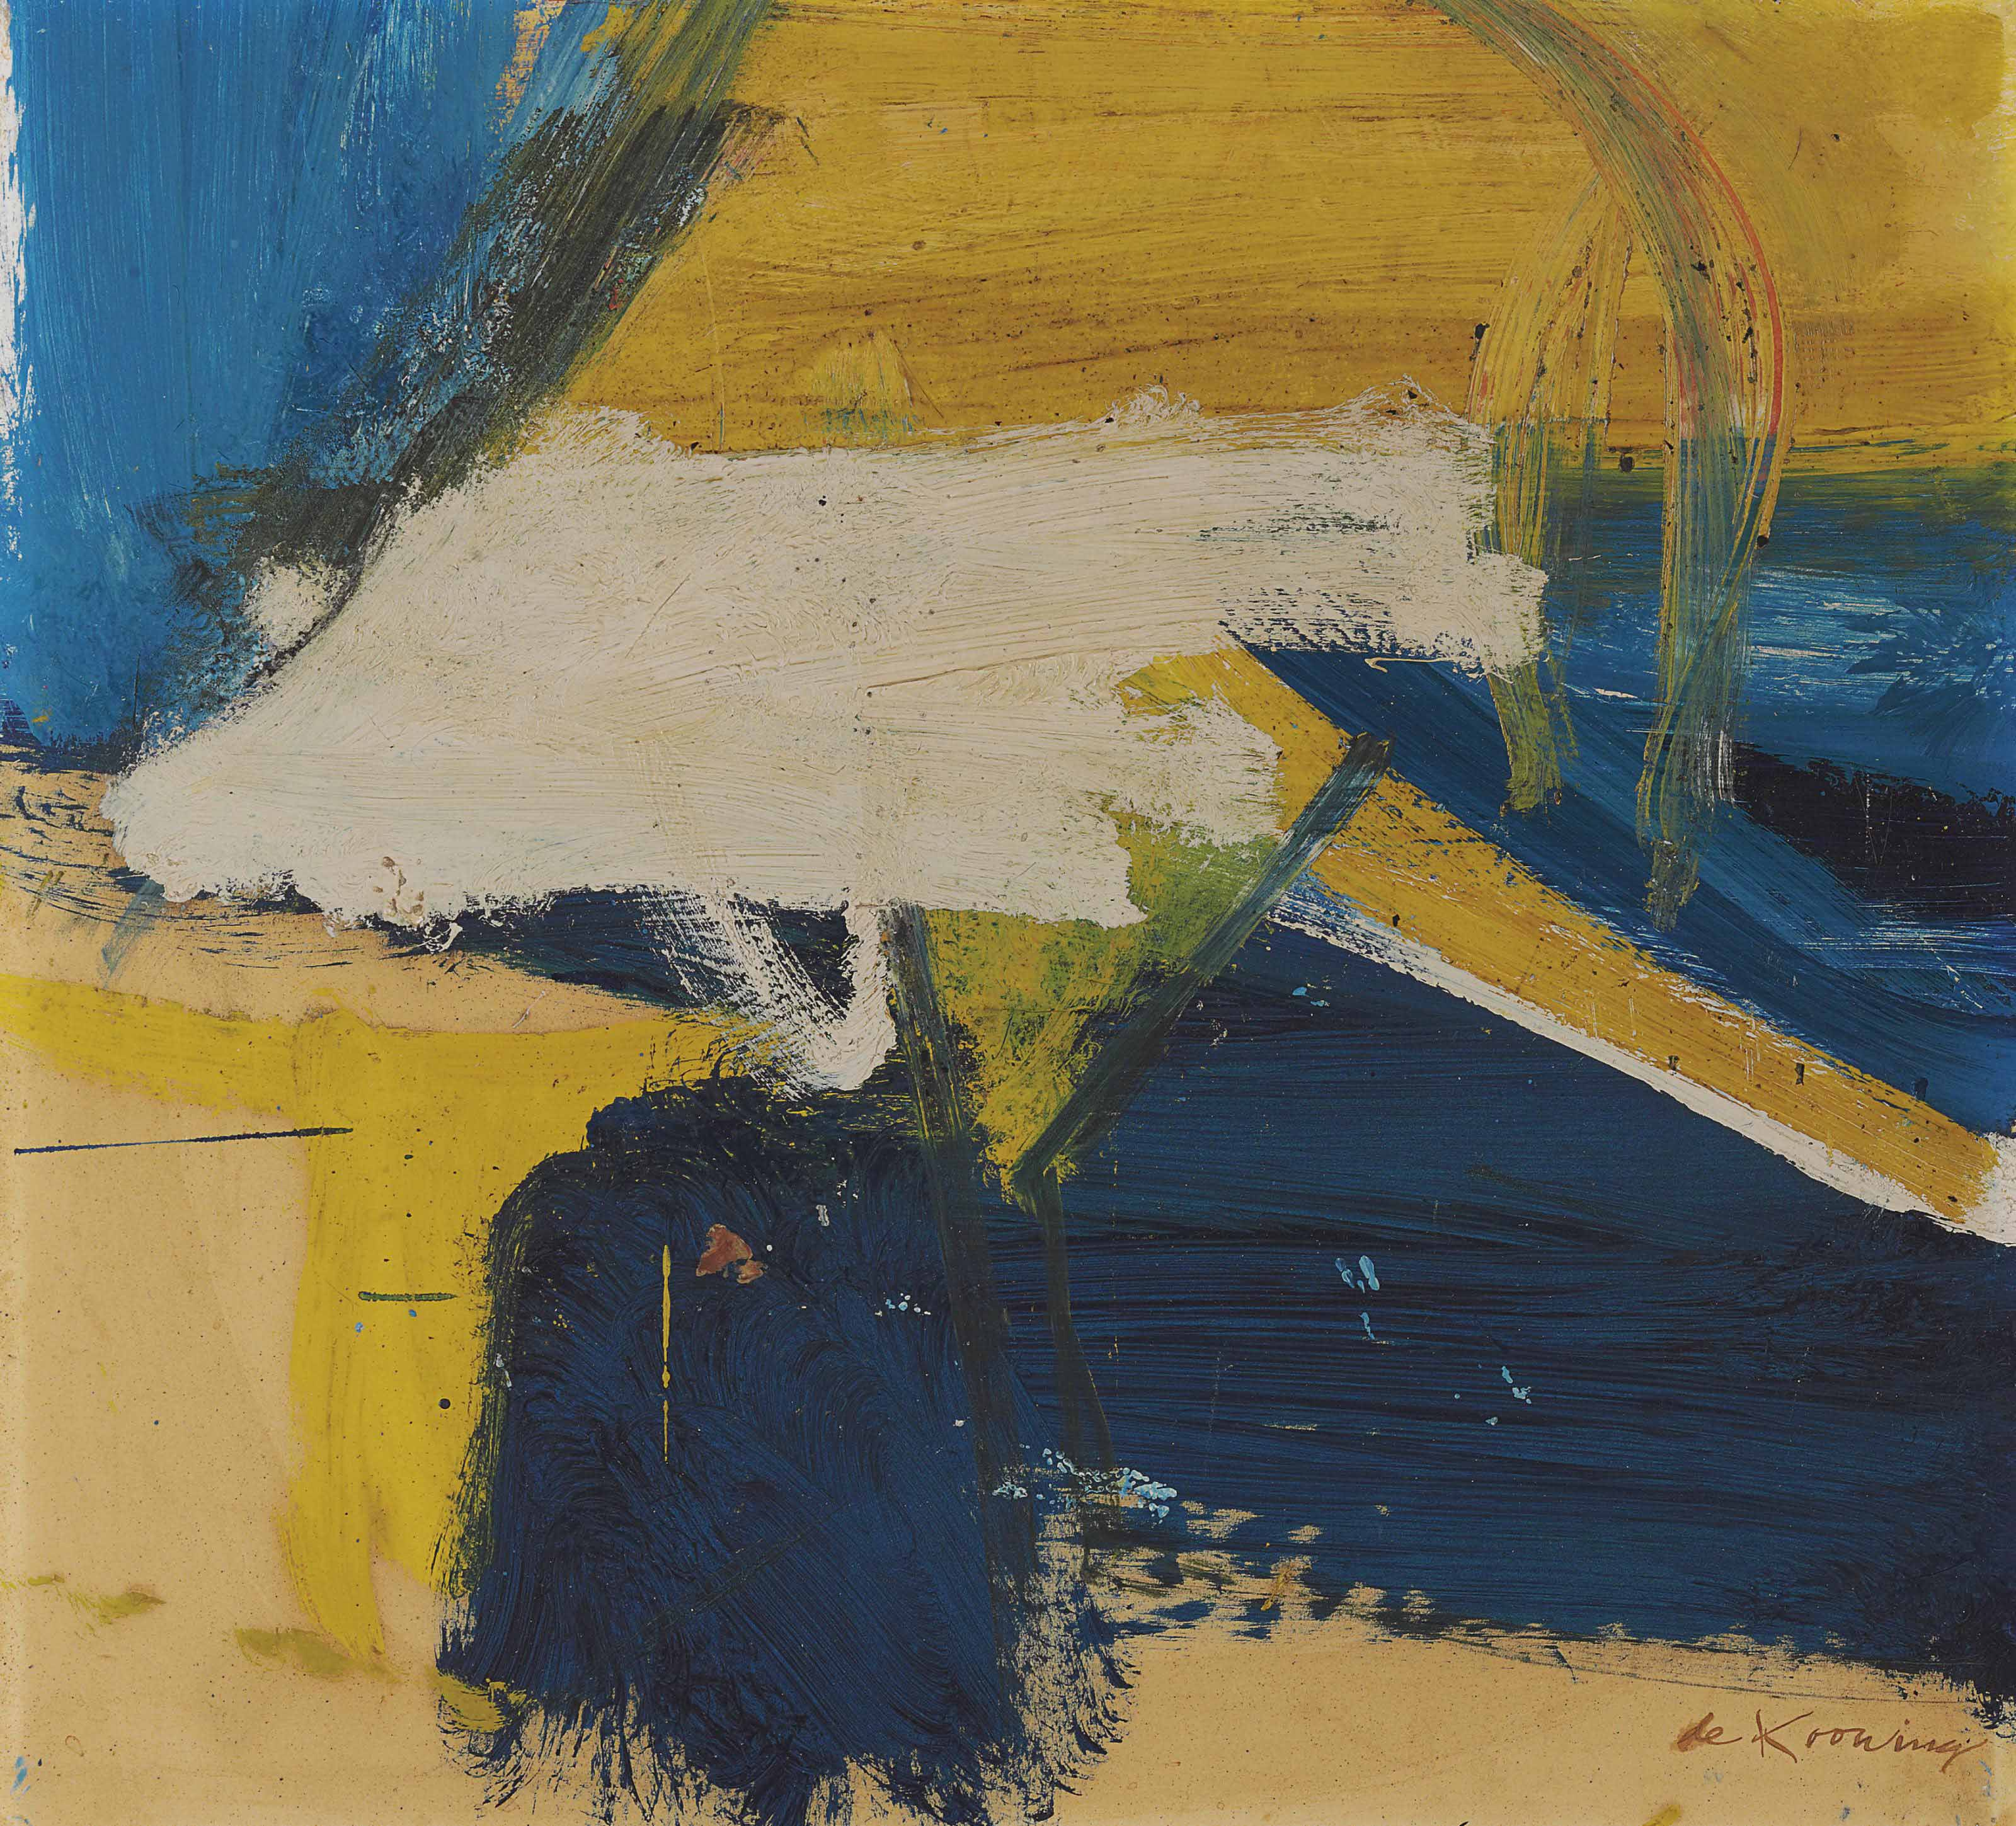 William de Kooning | Buy Posters, Frames, Canvas, Digital Art & Large Size Prints Of The Famous Modern Master's Artworks